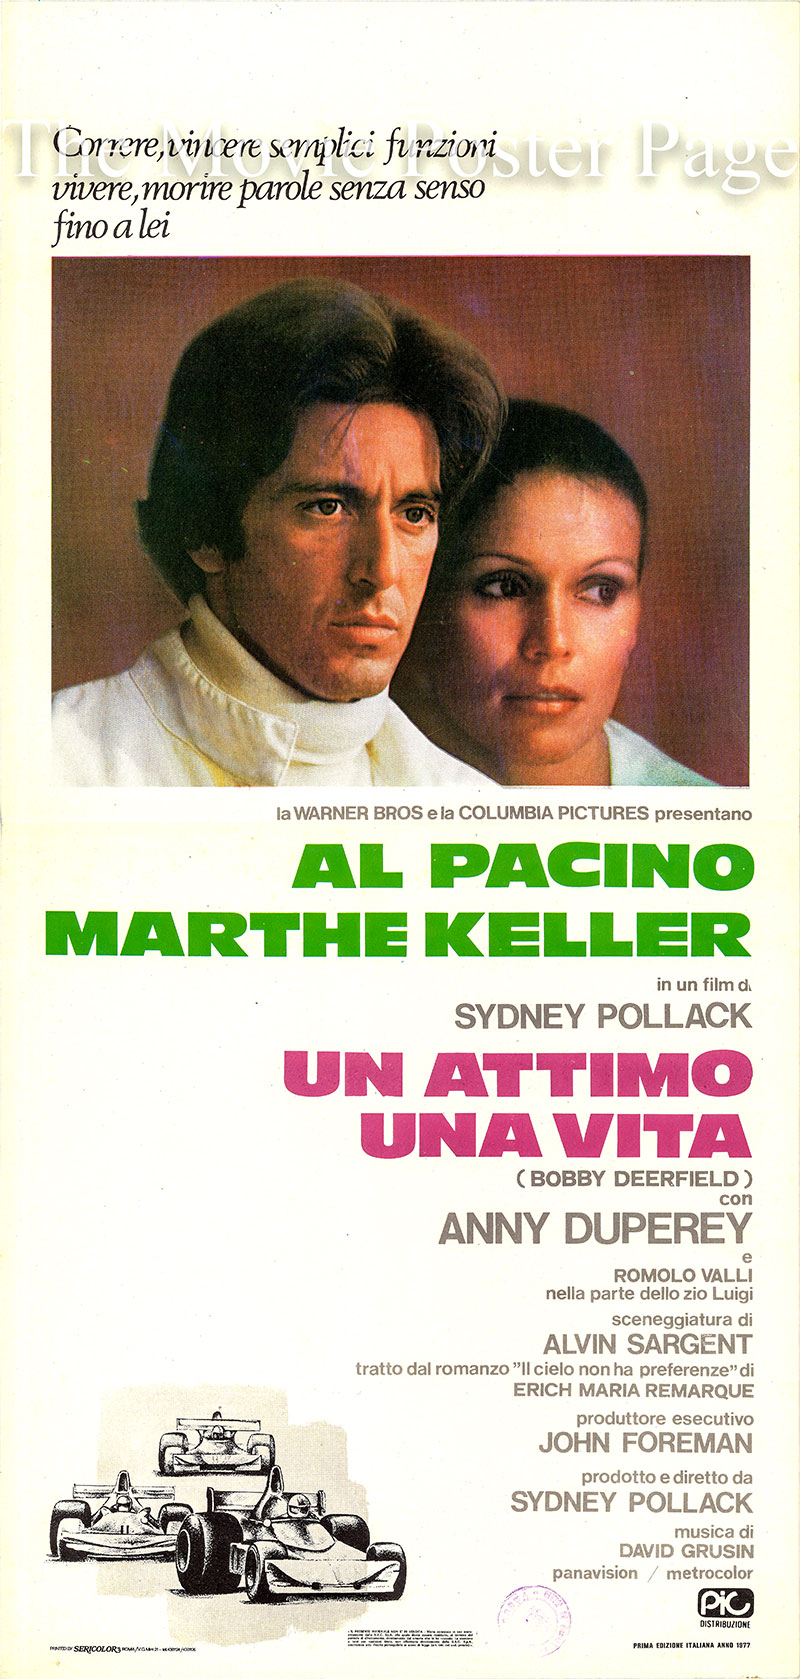 Pictured is an Italian locandina promotional poster for the 1977 Sydney Pollack film Bobby Deerfield starring Al Pacino as Bobby Deerfield.